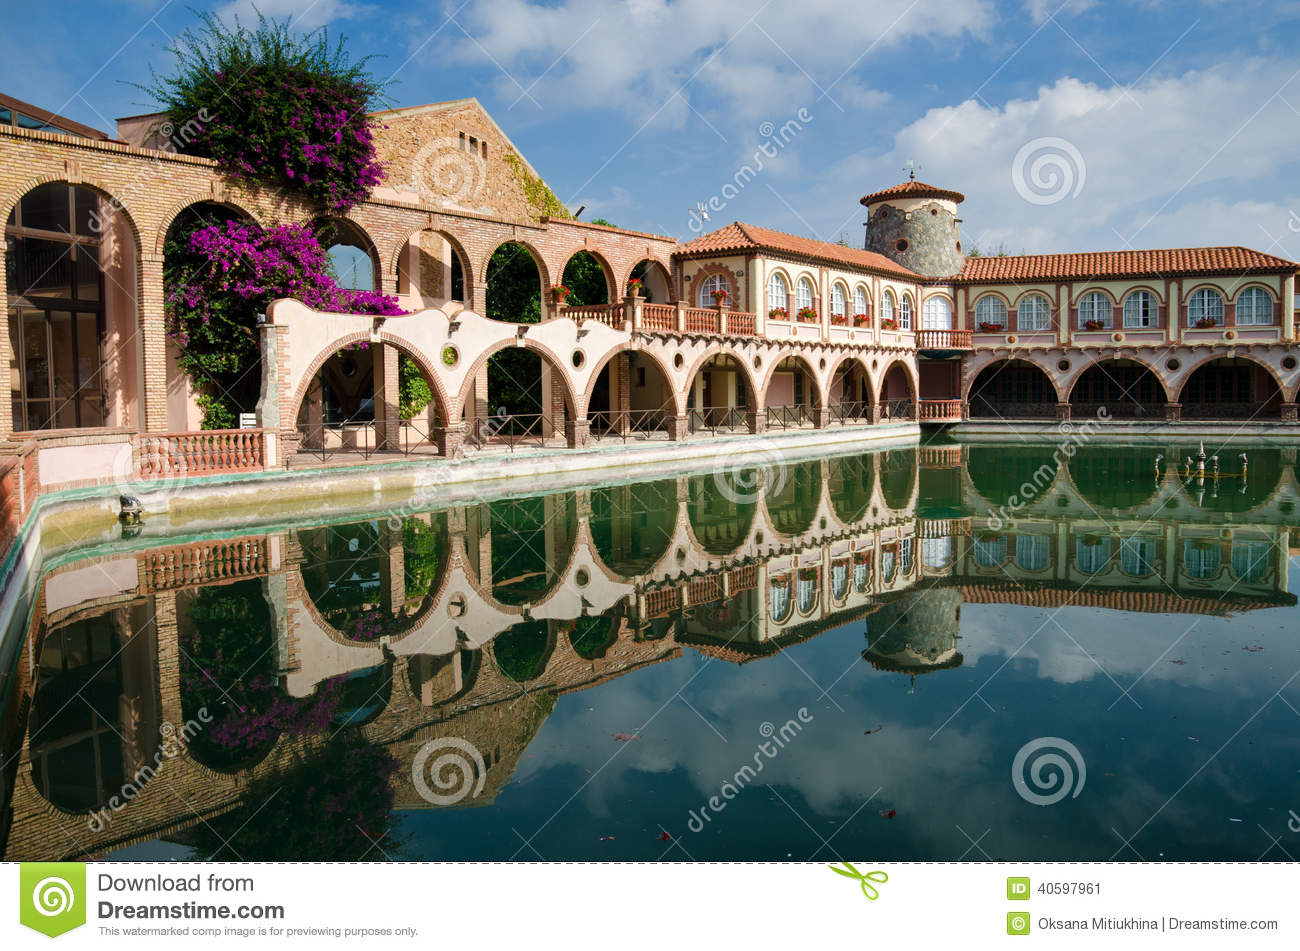 Roman baths of the spanish spa resort stock image image of pool roman 40597961 for How to say swimming pool in spanish